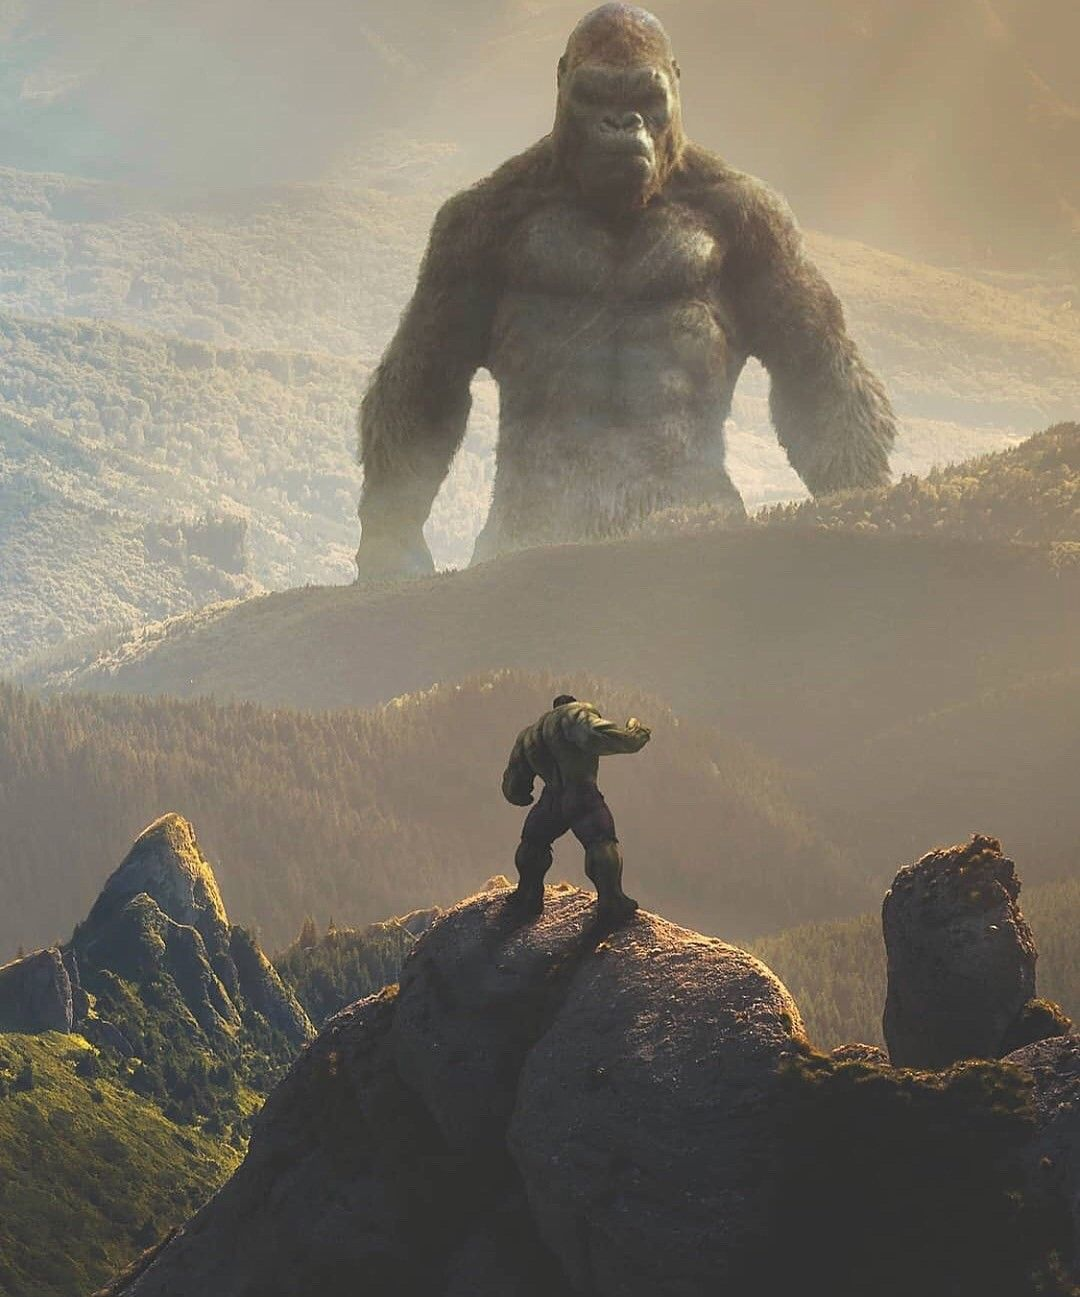 King Kong Vs Hulk Movie Hulk vs King Kong...no...